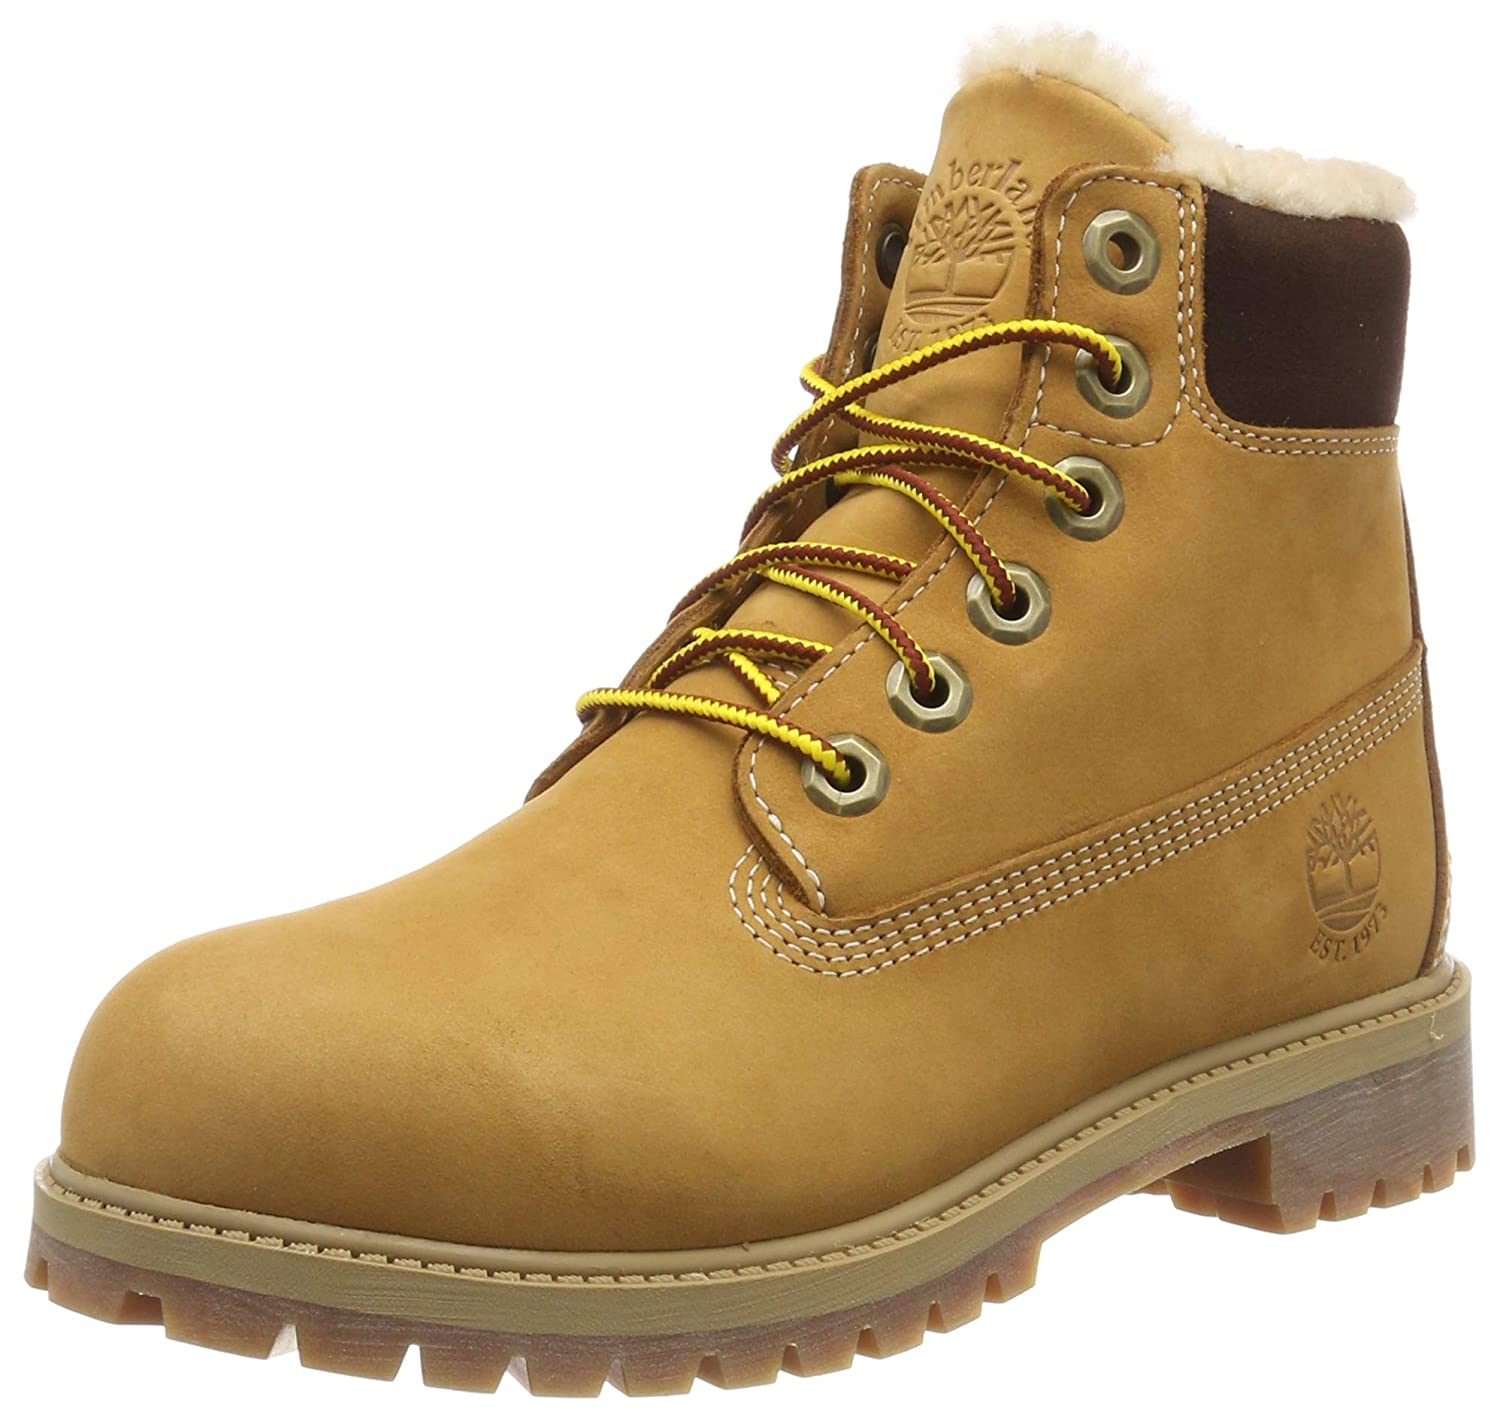 Timberland 6 in Premium Waterproof Shearling Lined, Bottes Mixte Enfant